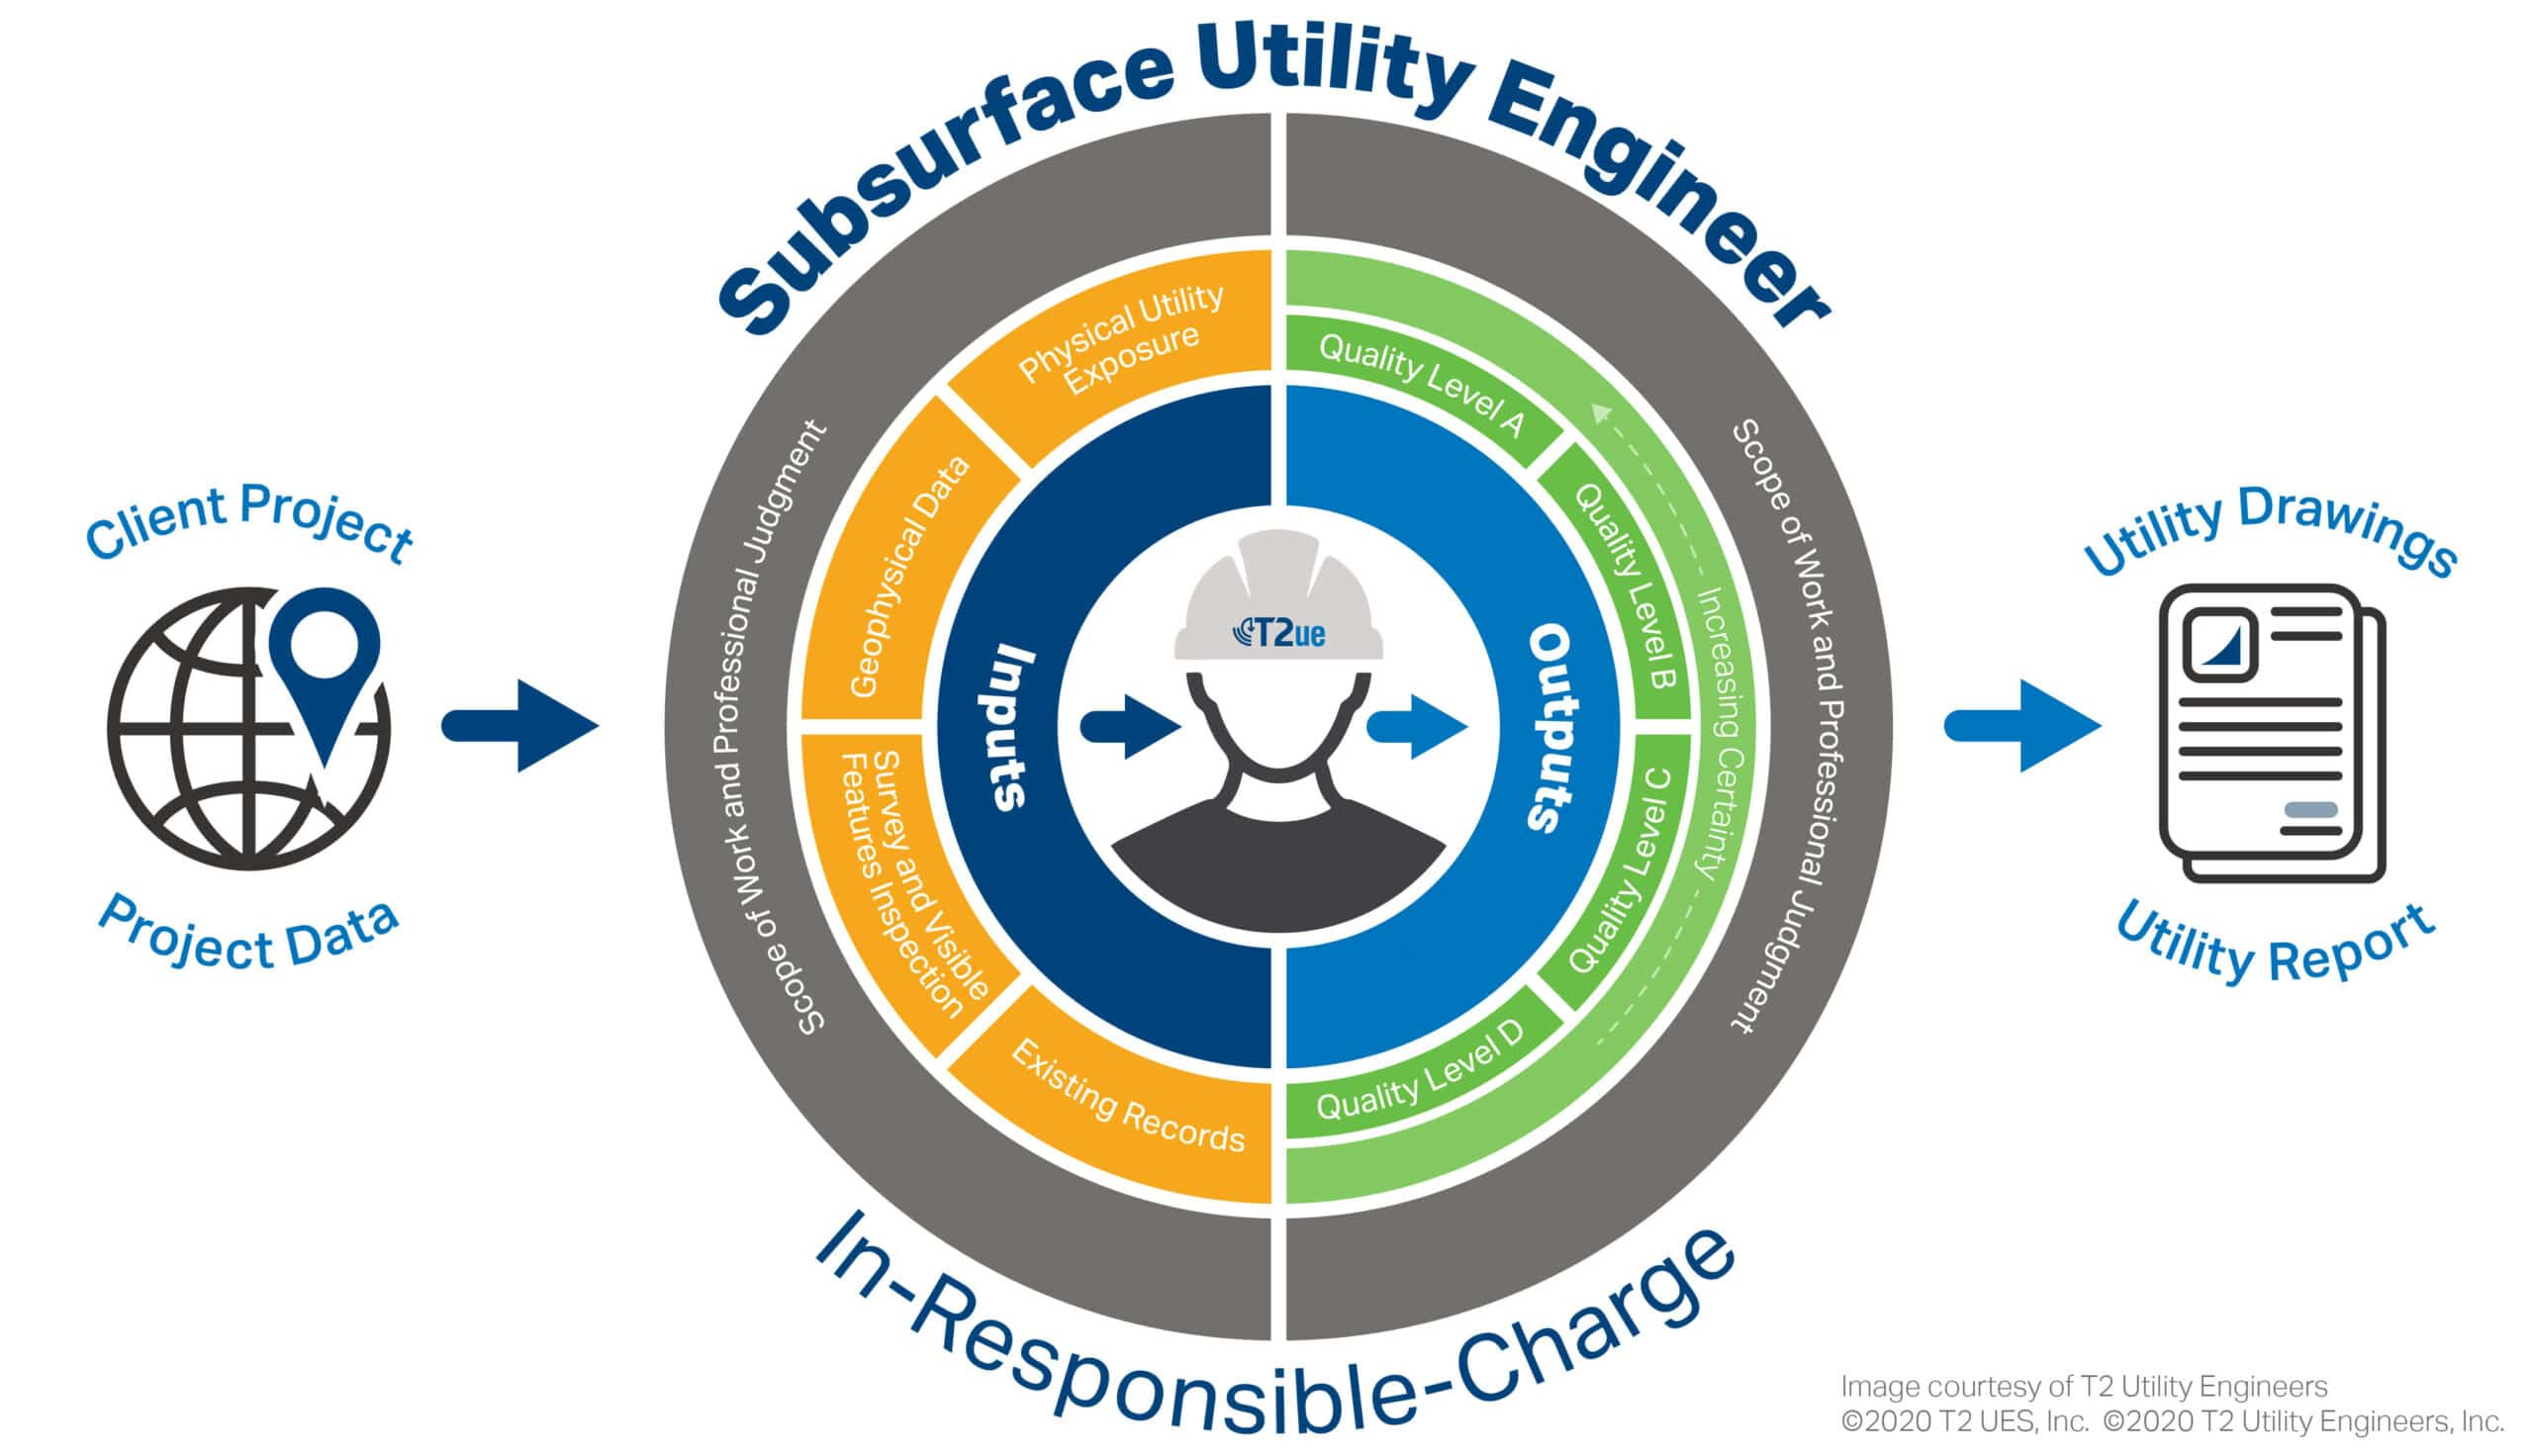 subsurface-utility-engineer-in-responsible-charge